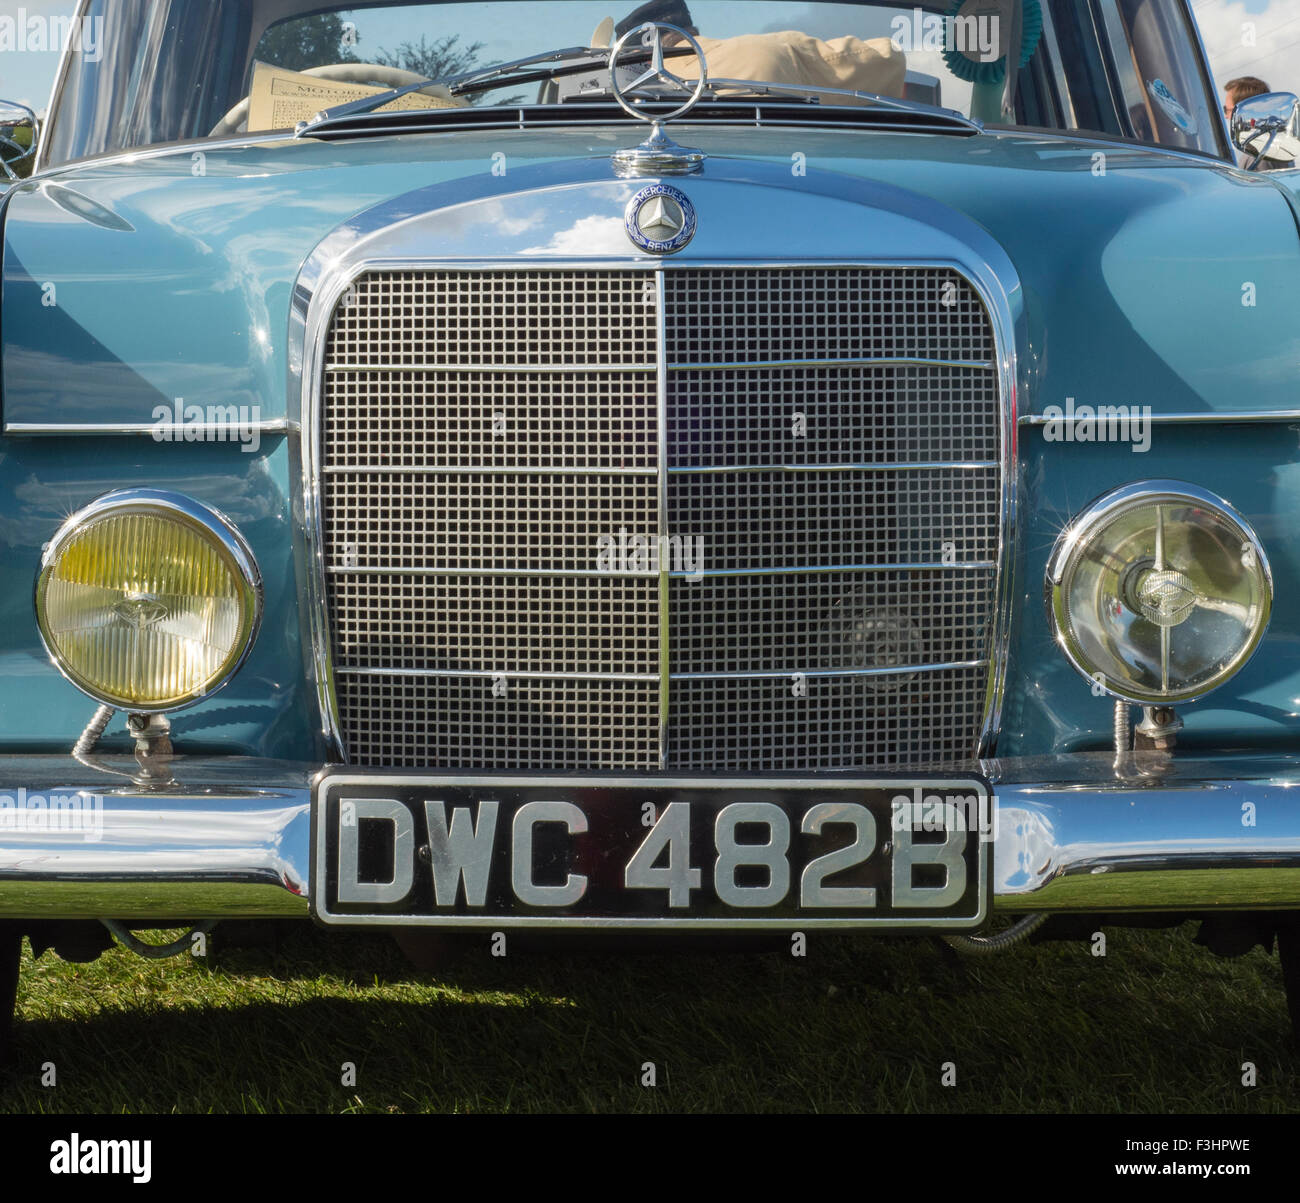 Vintage Blue Mercedes Benz, headlamps, grille, badge, windscreen, windshield, reflection of clouds, shadows, grass, - Stock Image